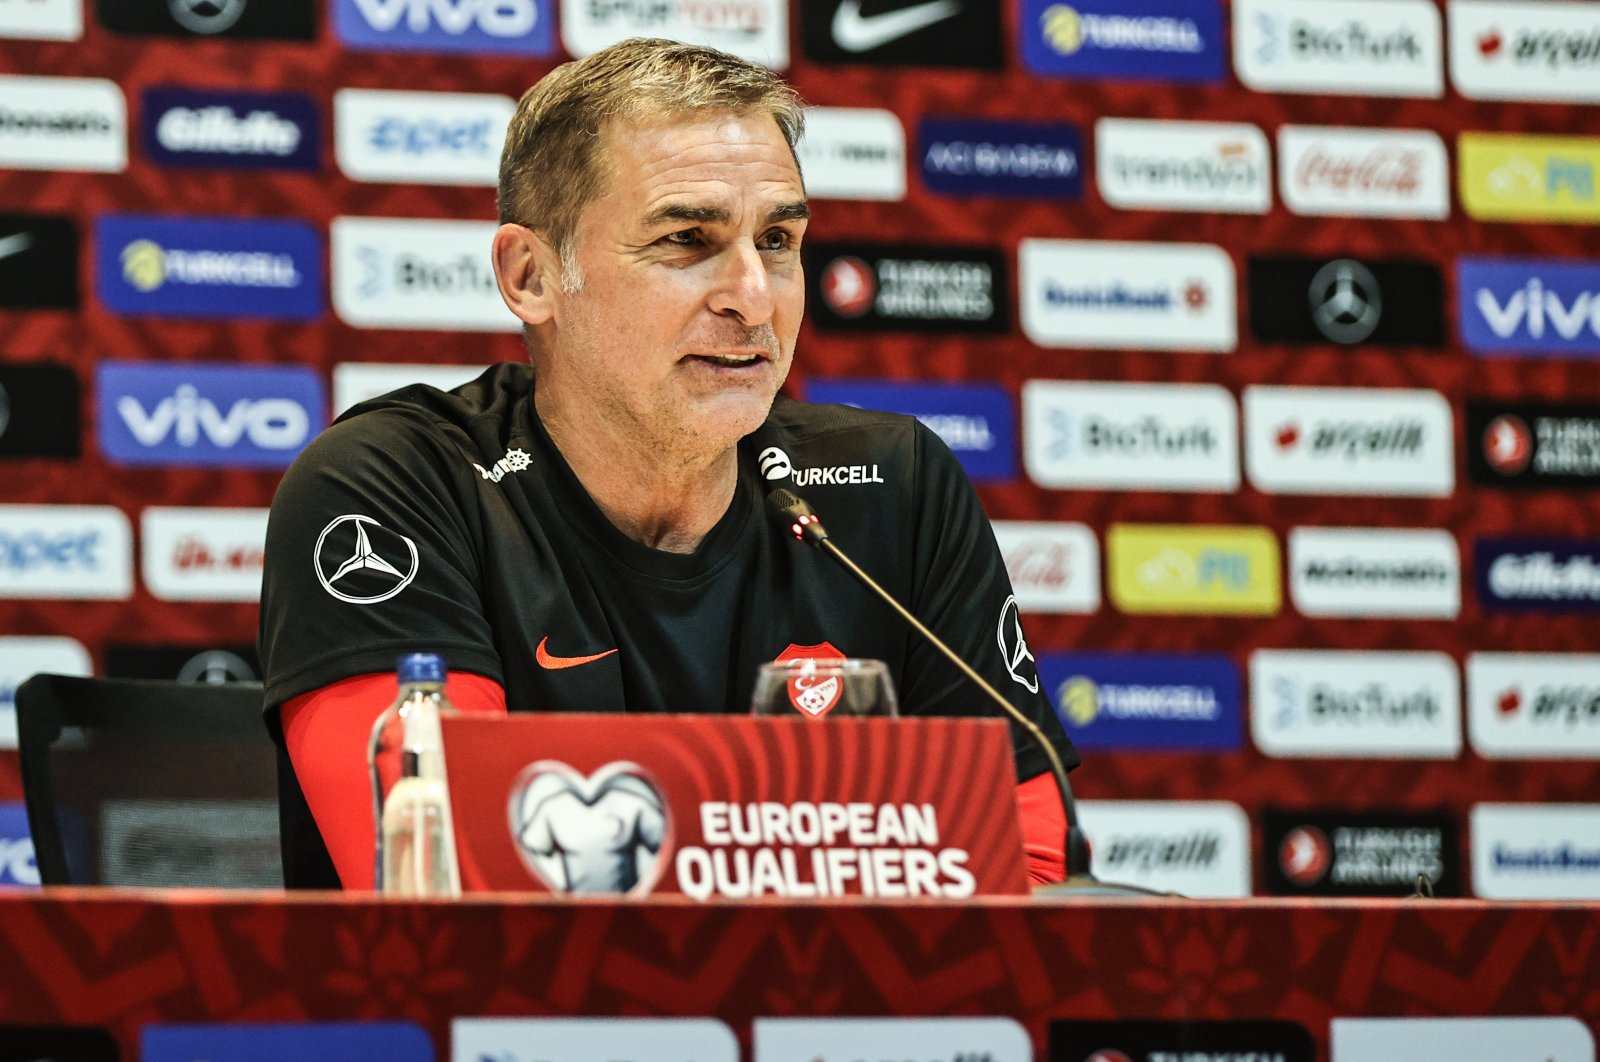 Turkey coach Stefan Kuntz speaks at a press conference ahead of the World Cup 2022 qualifier match against Norway, in Istanbul, Turkey, Oct. 7, 2021. (AA Photo)